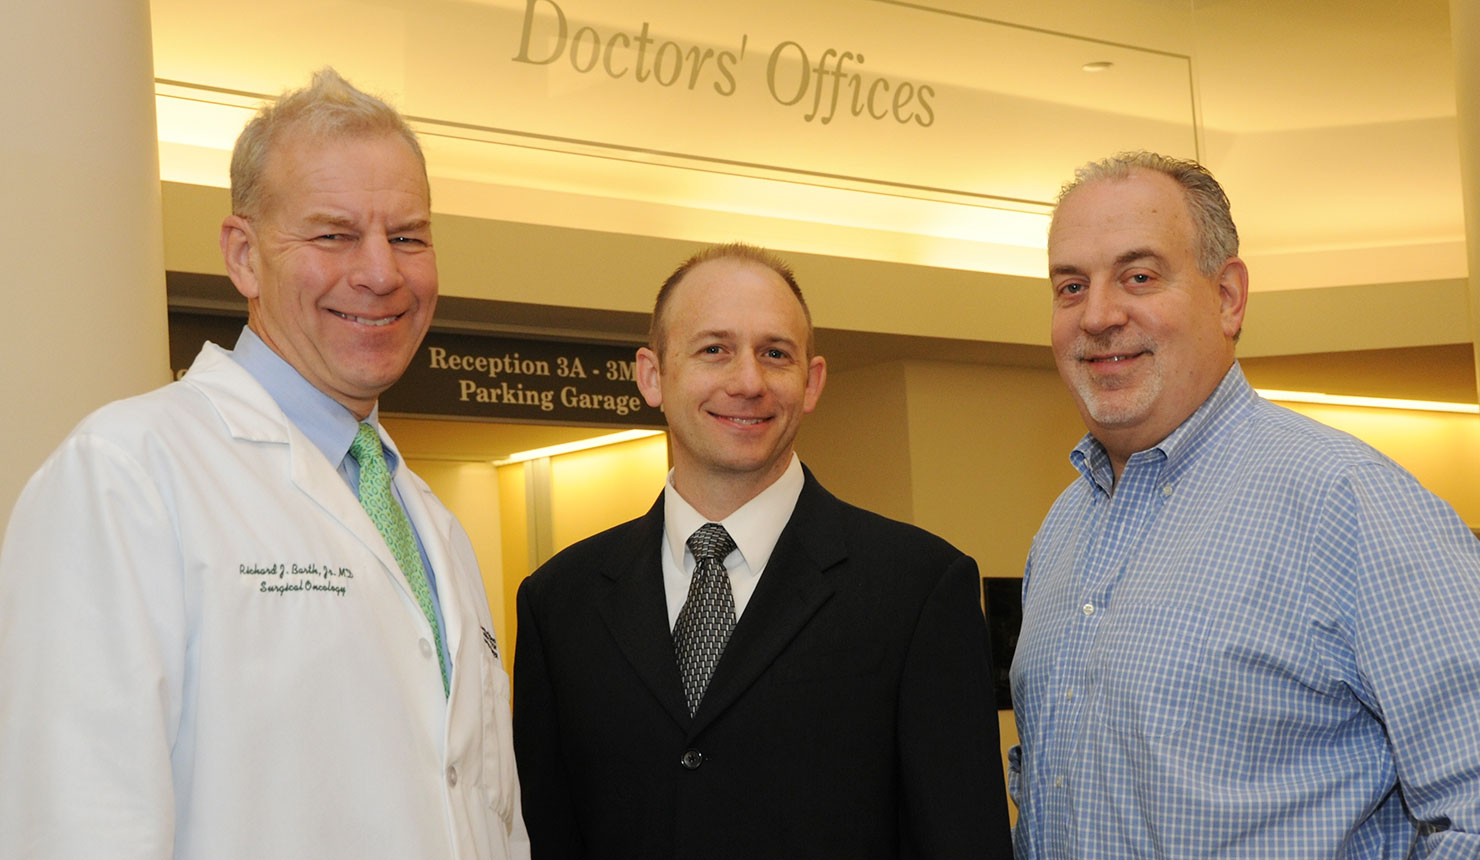 SYNERGY Clinician-Entrepreneur Fellowship (S-CEF) fellows Richard Barth, Jr. (left), MD, and William Hudenko (center), PhD, with Aaron Kaplan, MD, who leads the Academic-Industry Core for SYNERGY and developed the S-CEF. (photo by Jon Gilbert Fox)